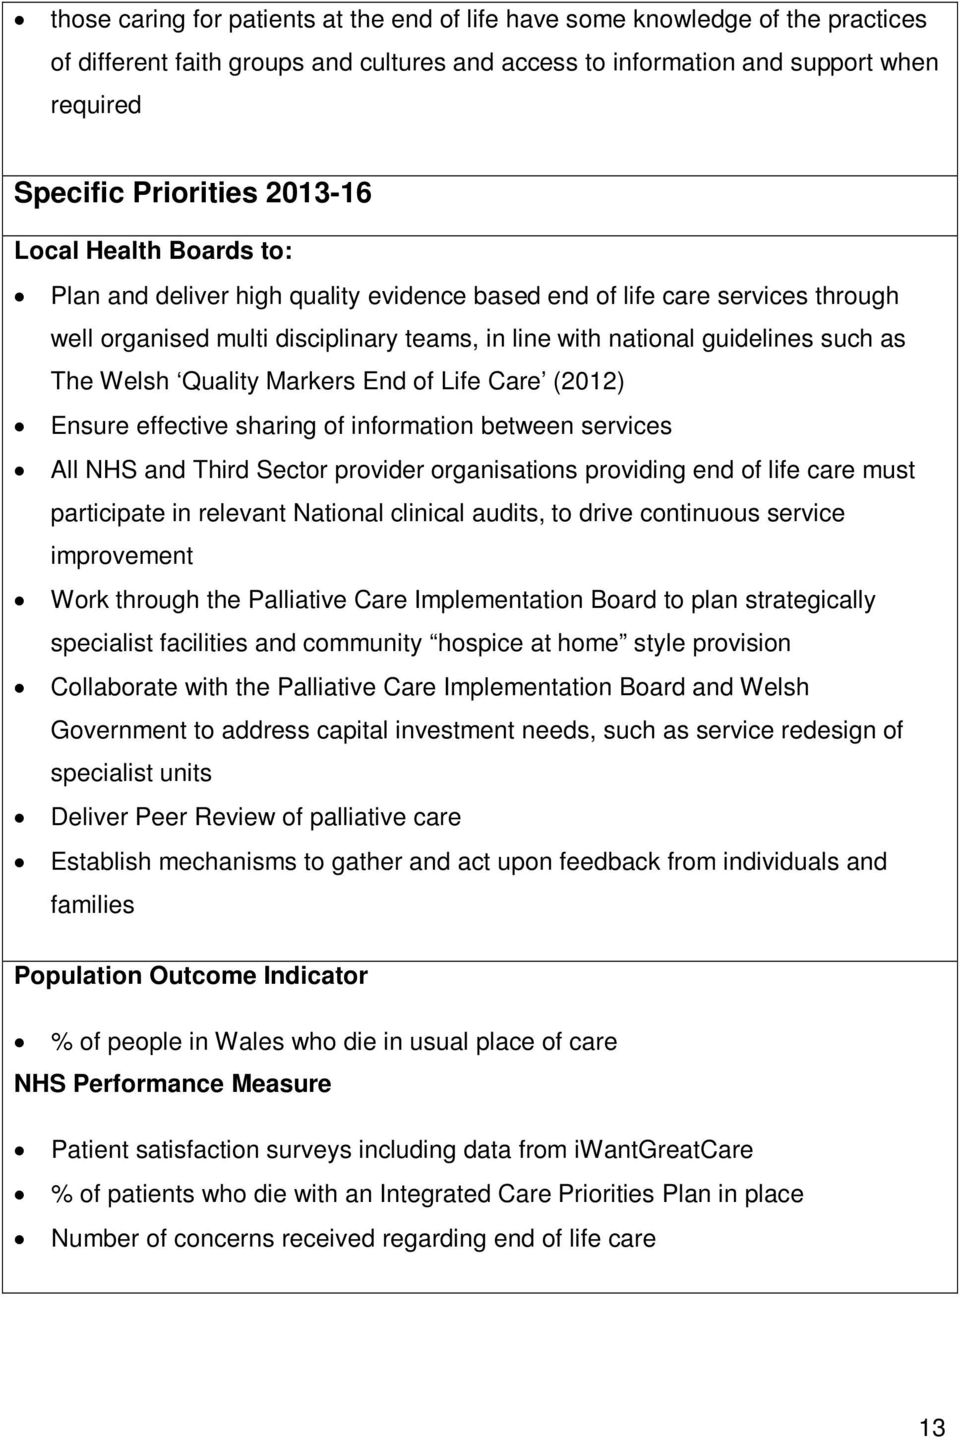 Welsh Quality Markers End of Life Care (2012) Ensure effective sharing of information between services All NHS and Third Sector provider organisations providing end of life care must participate in